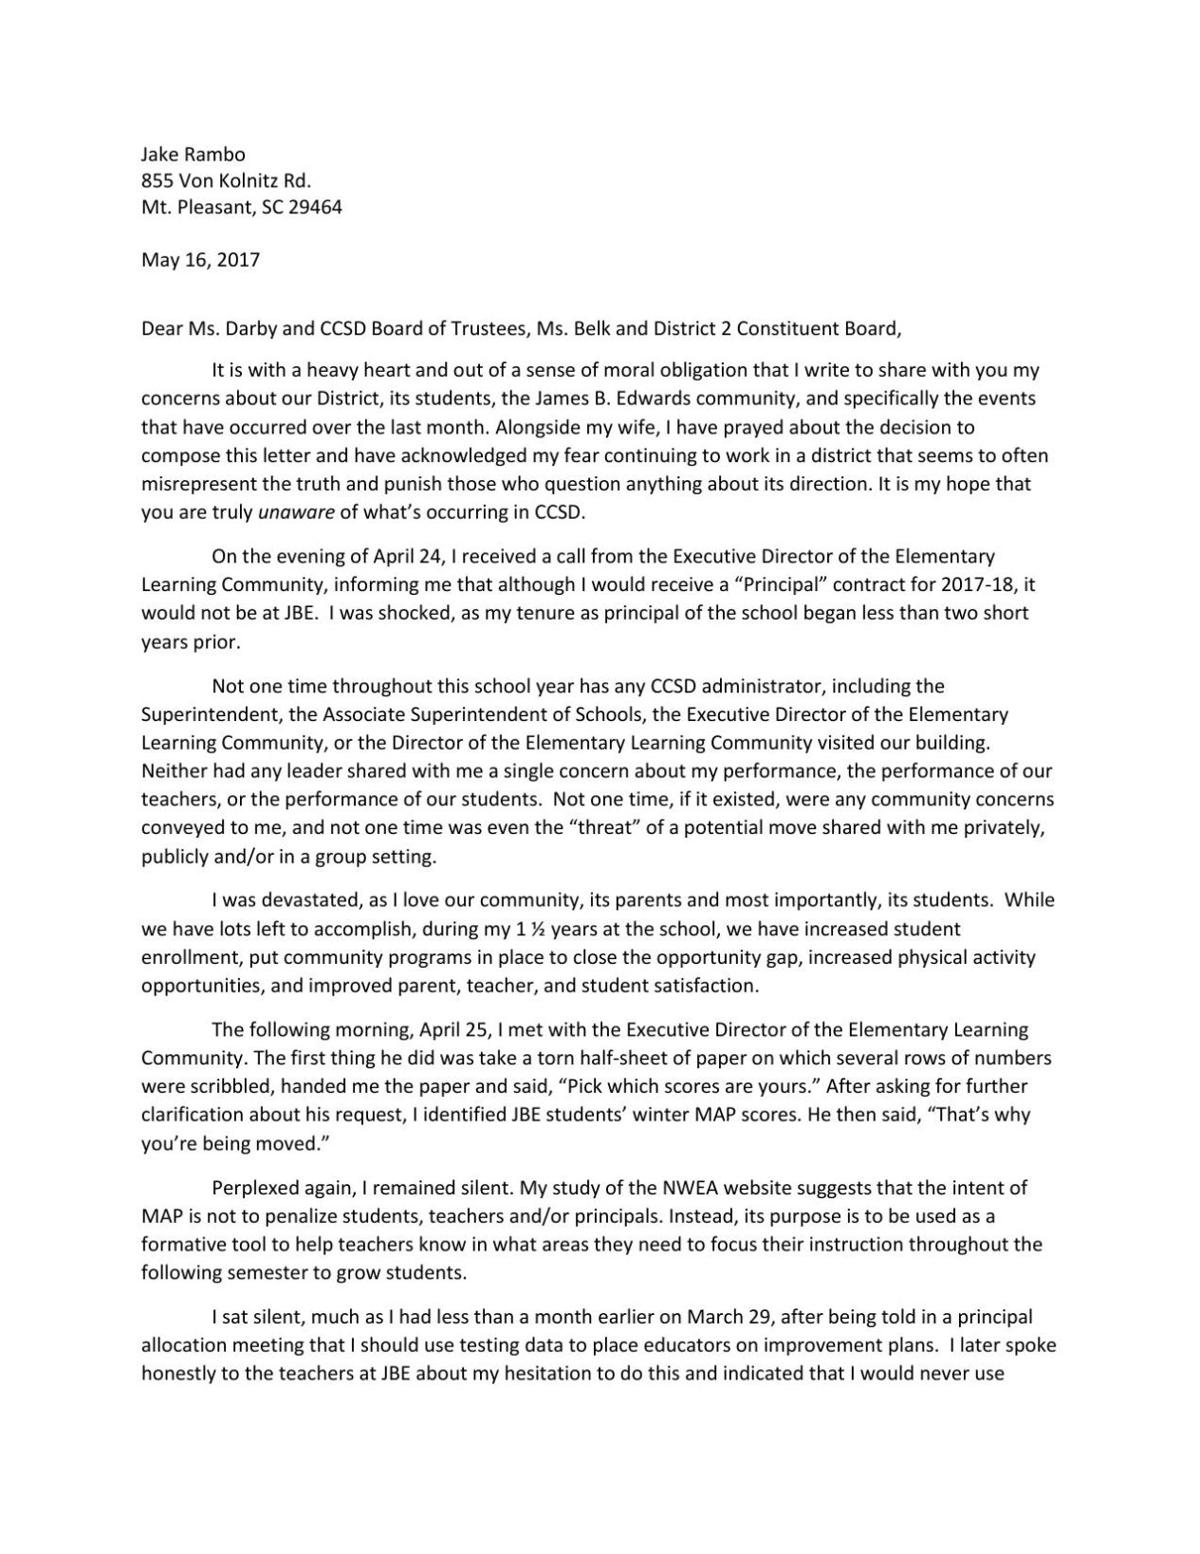 Letter From Jake Rambo Postandcourier